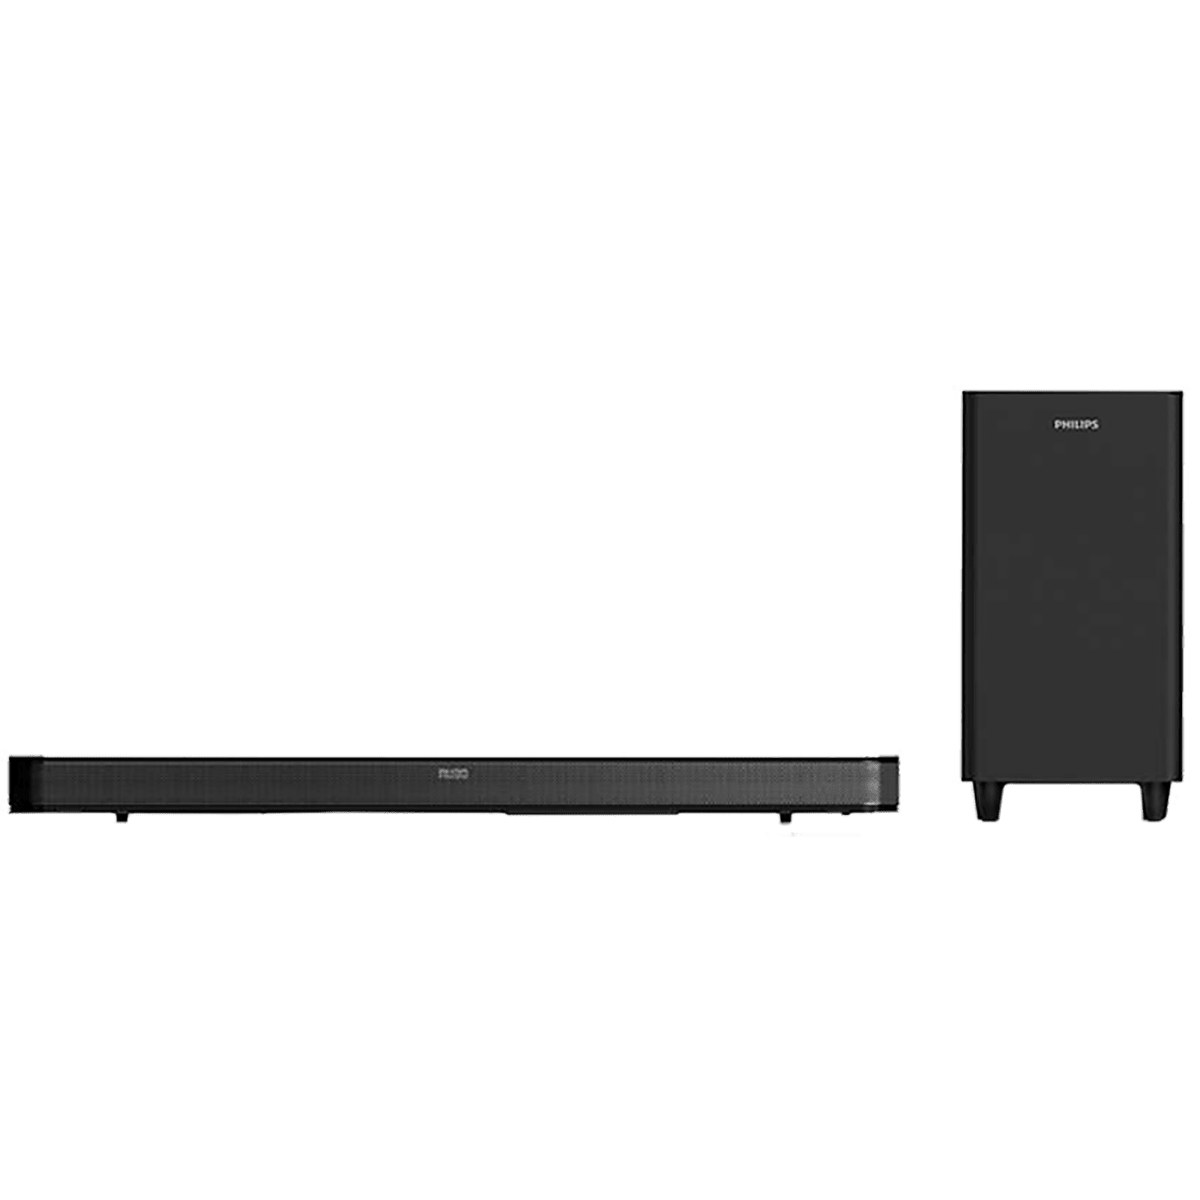 Philips 8000 Series 2.1 Channel 160 Watts Bluetooth Sound Bar Home Theatre (With Wireless Subwoofer, HTL8162/94, Black)